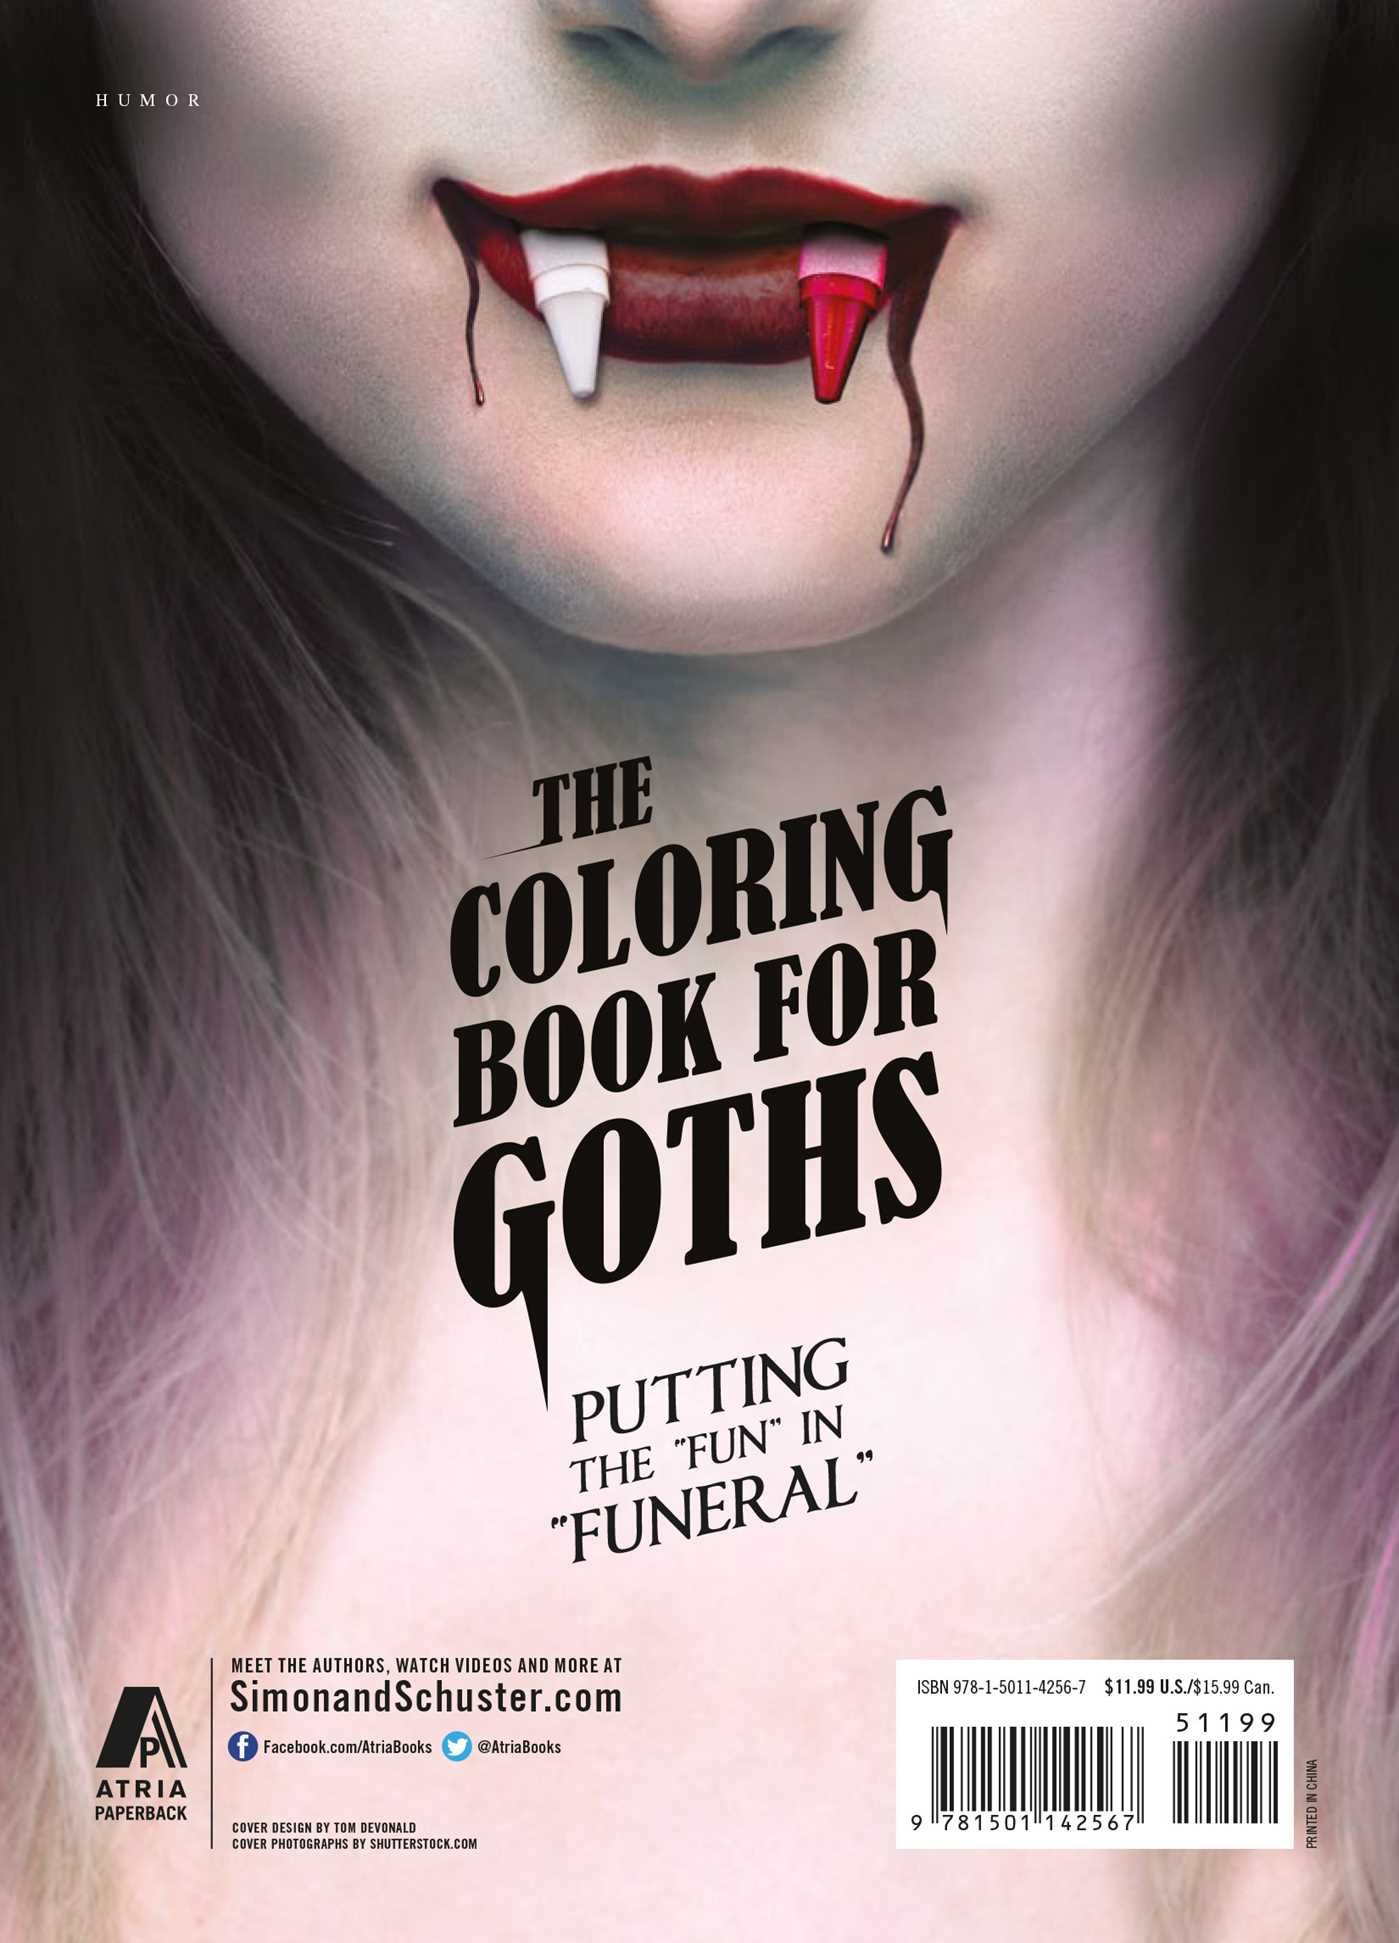 amazoncom the coloring book for goths the worlds most depressing book 9781501142567 tom devonald books